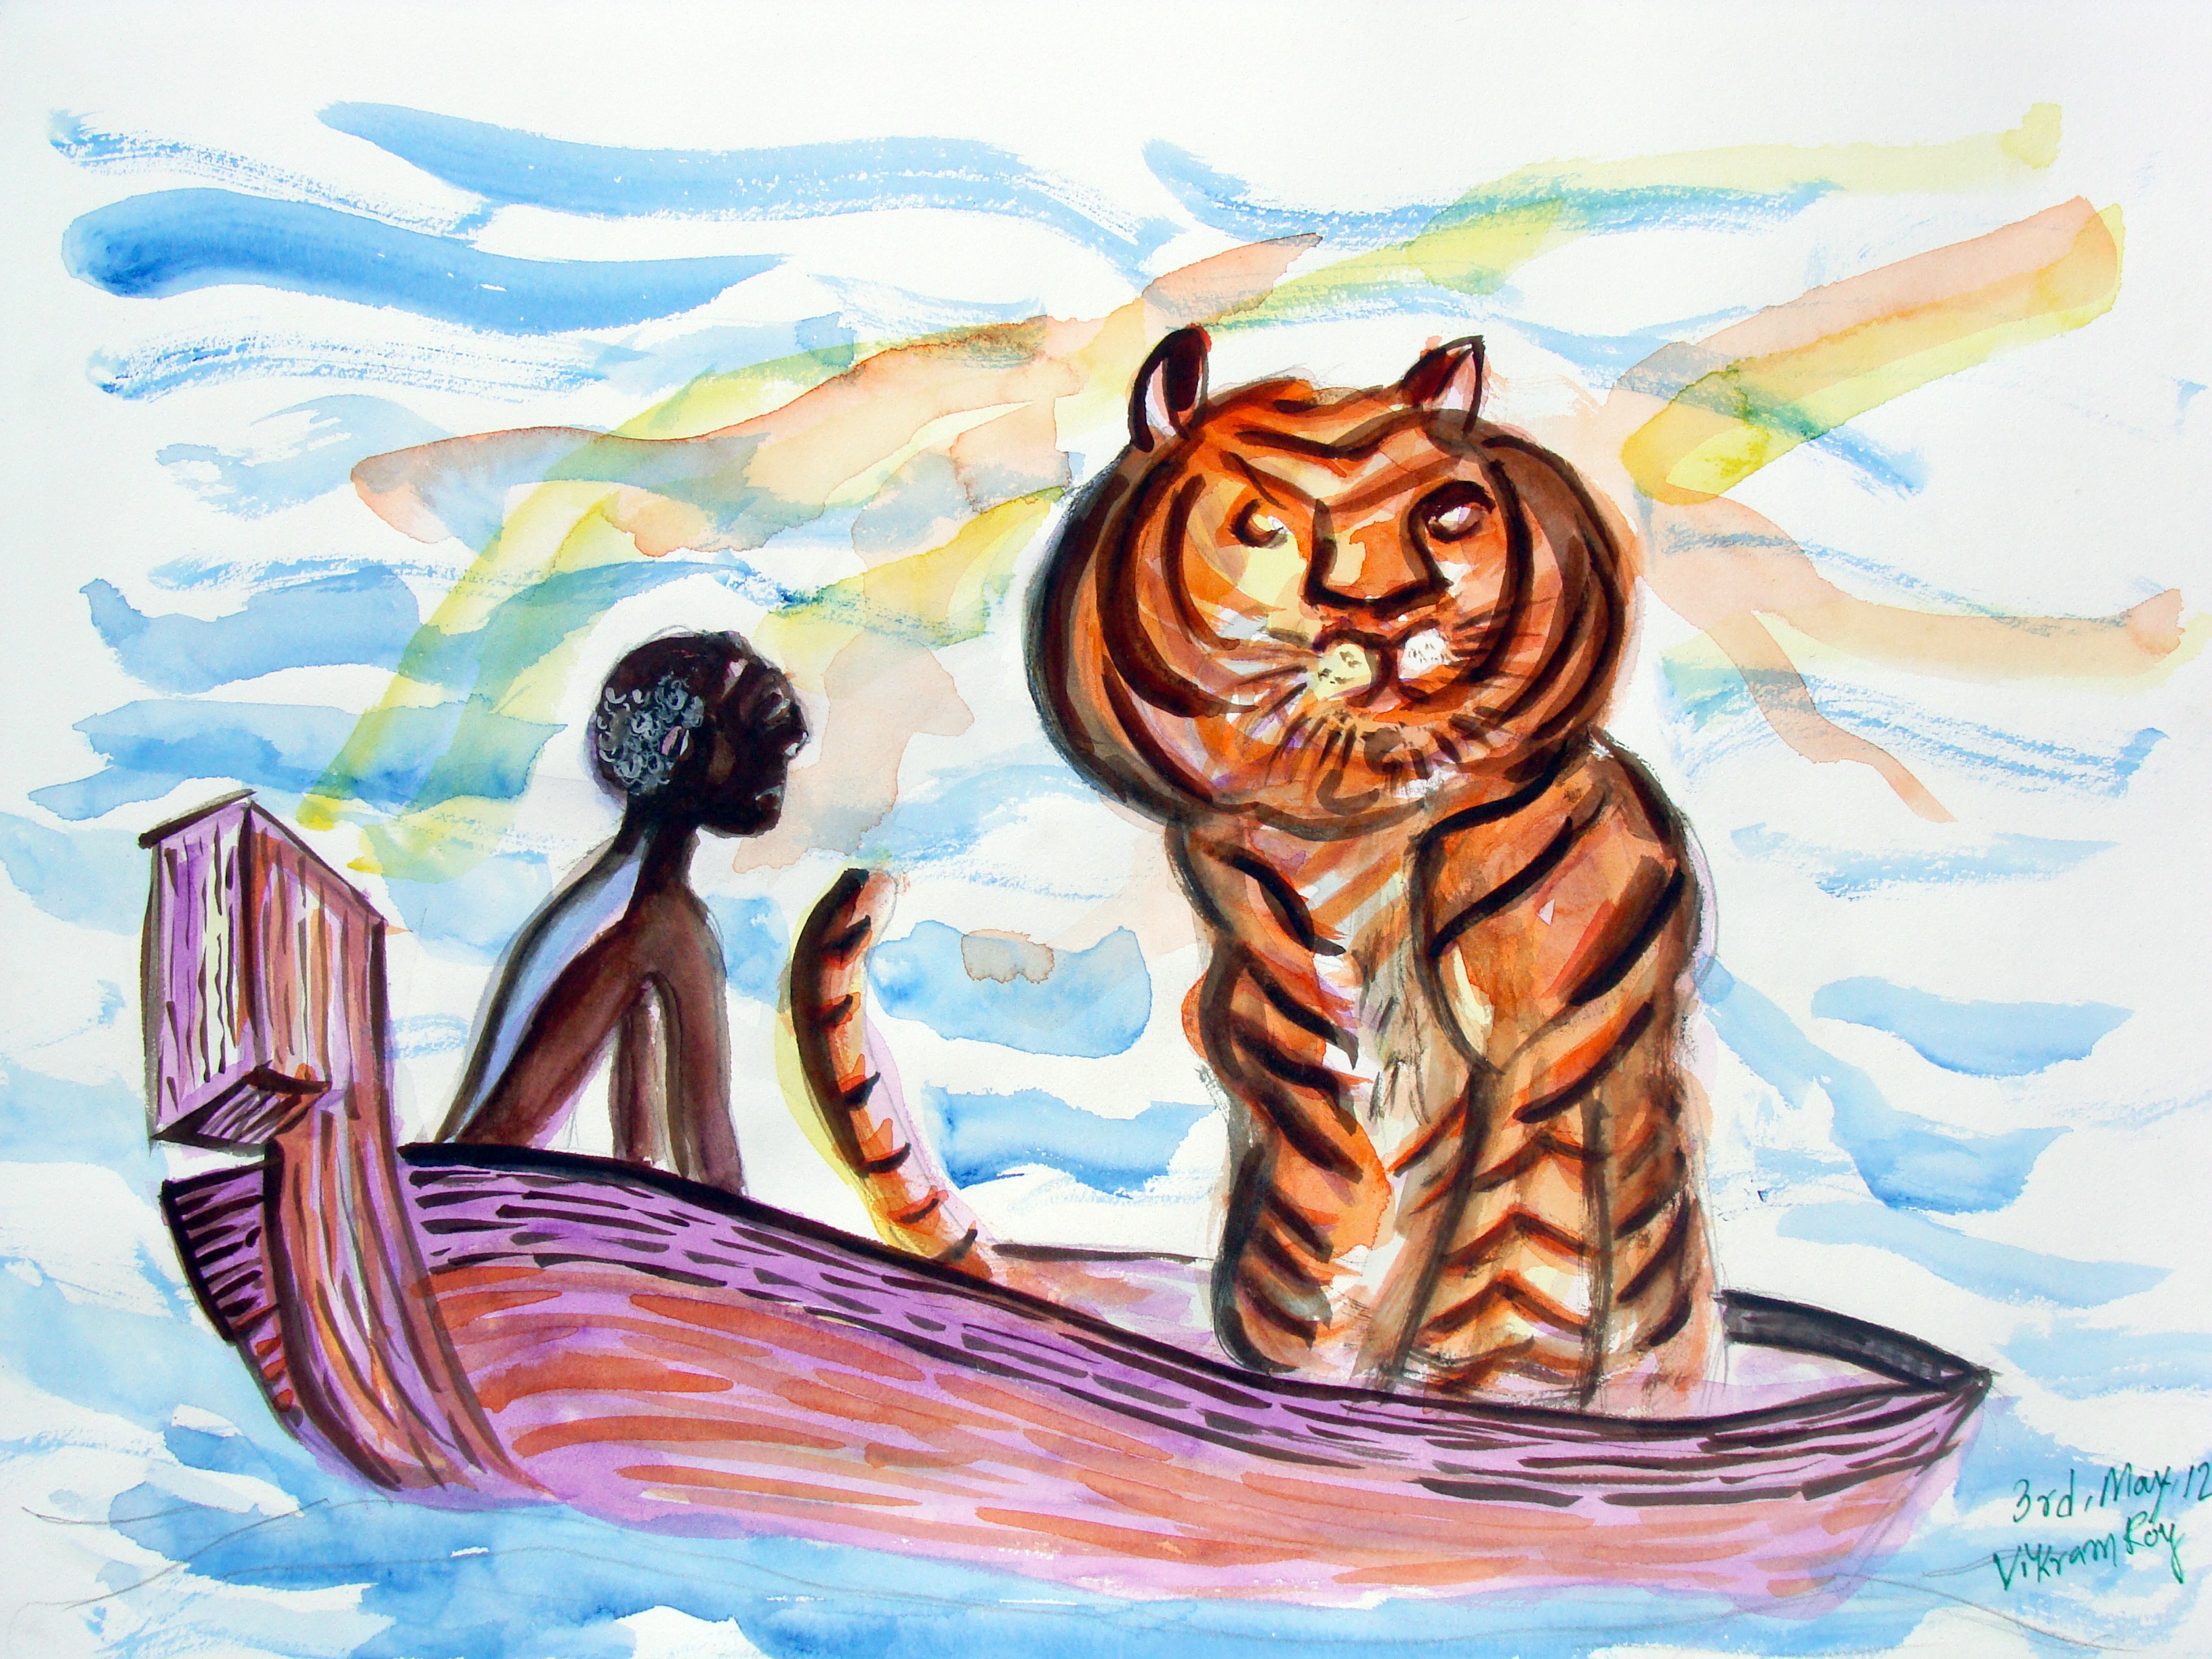 Life of pi water color illustration vikram roy 39 s blog for What is the significance of pi s unusual name